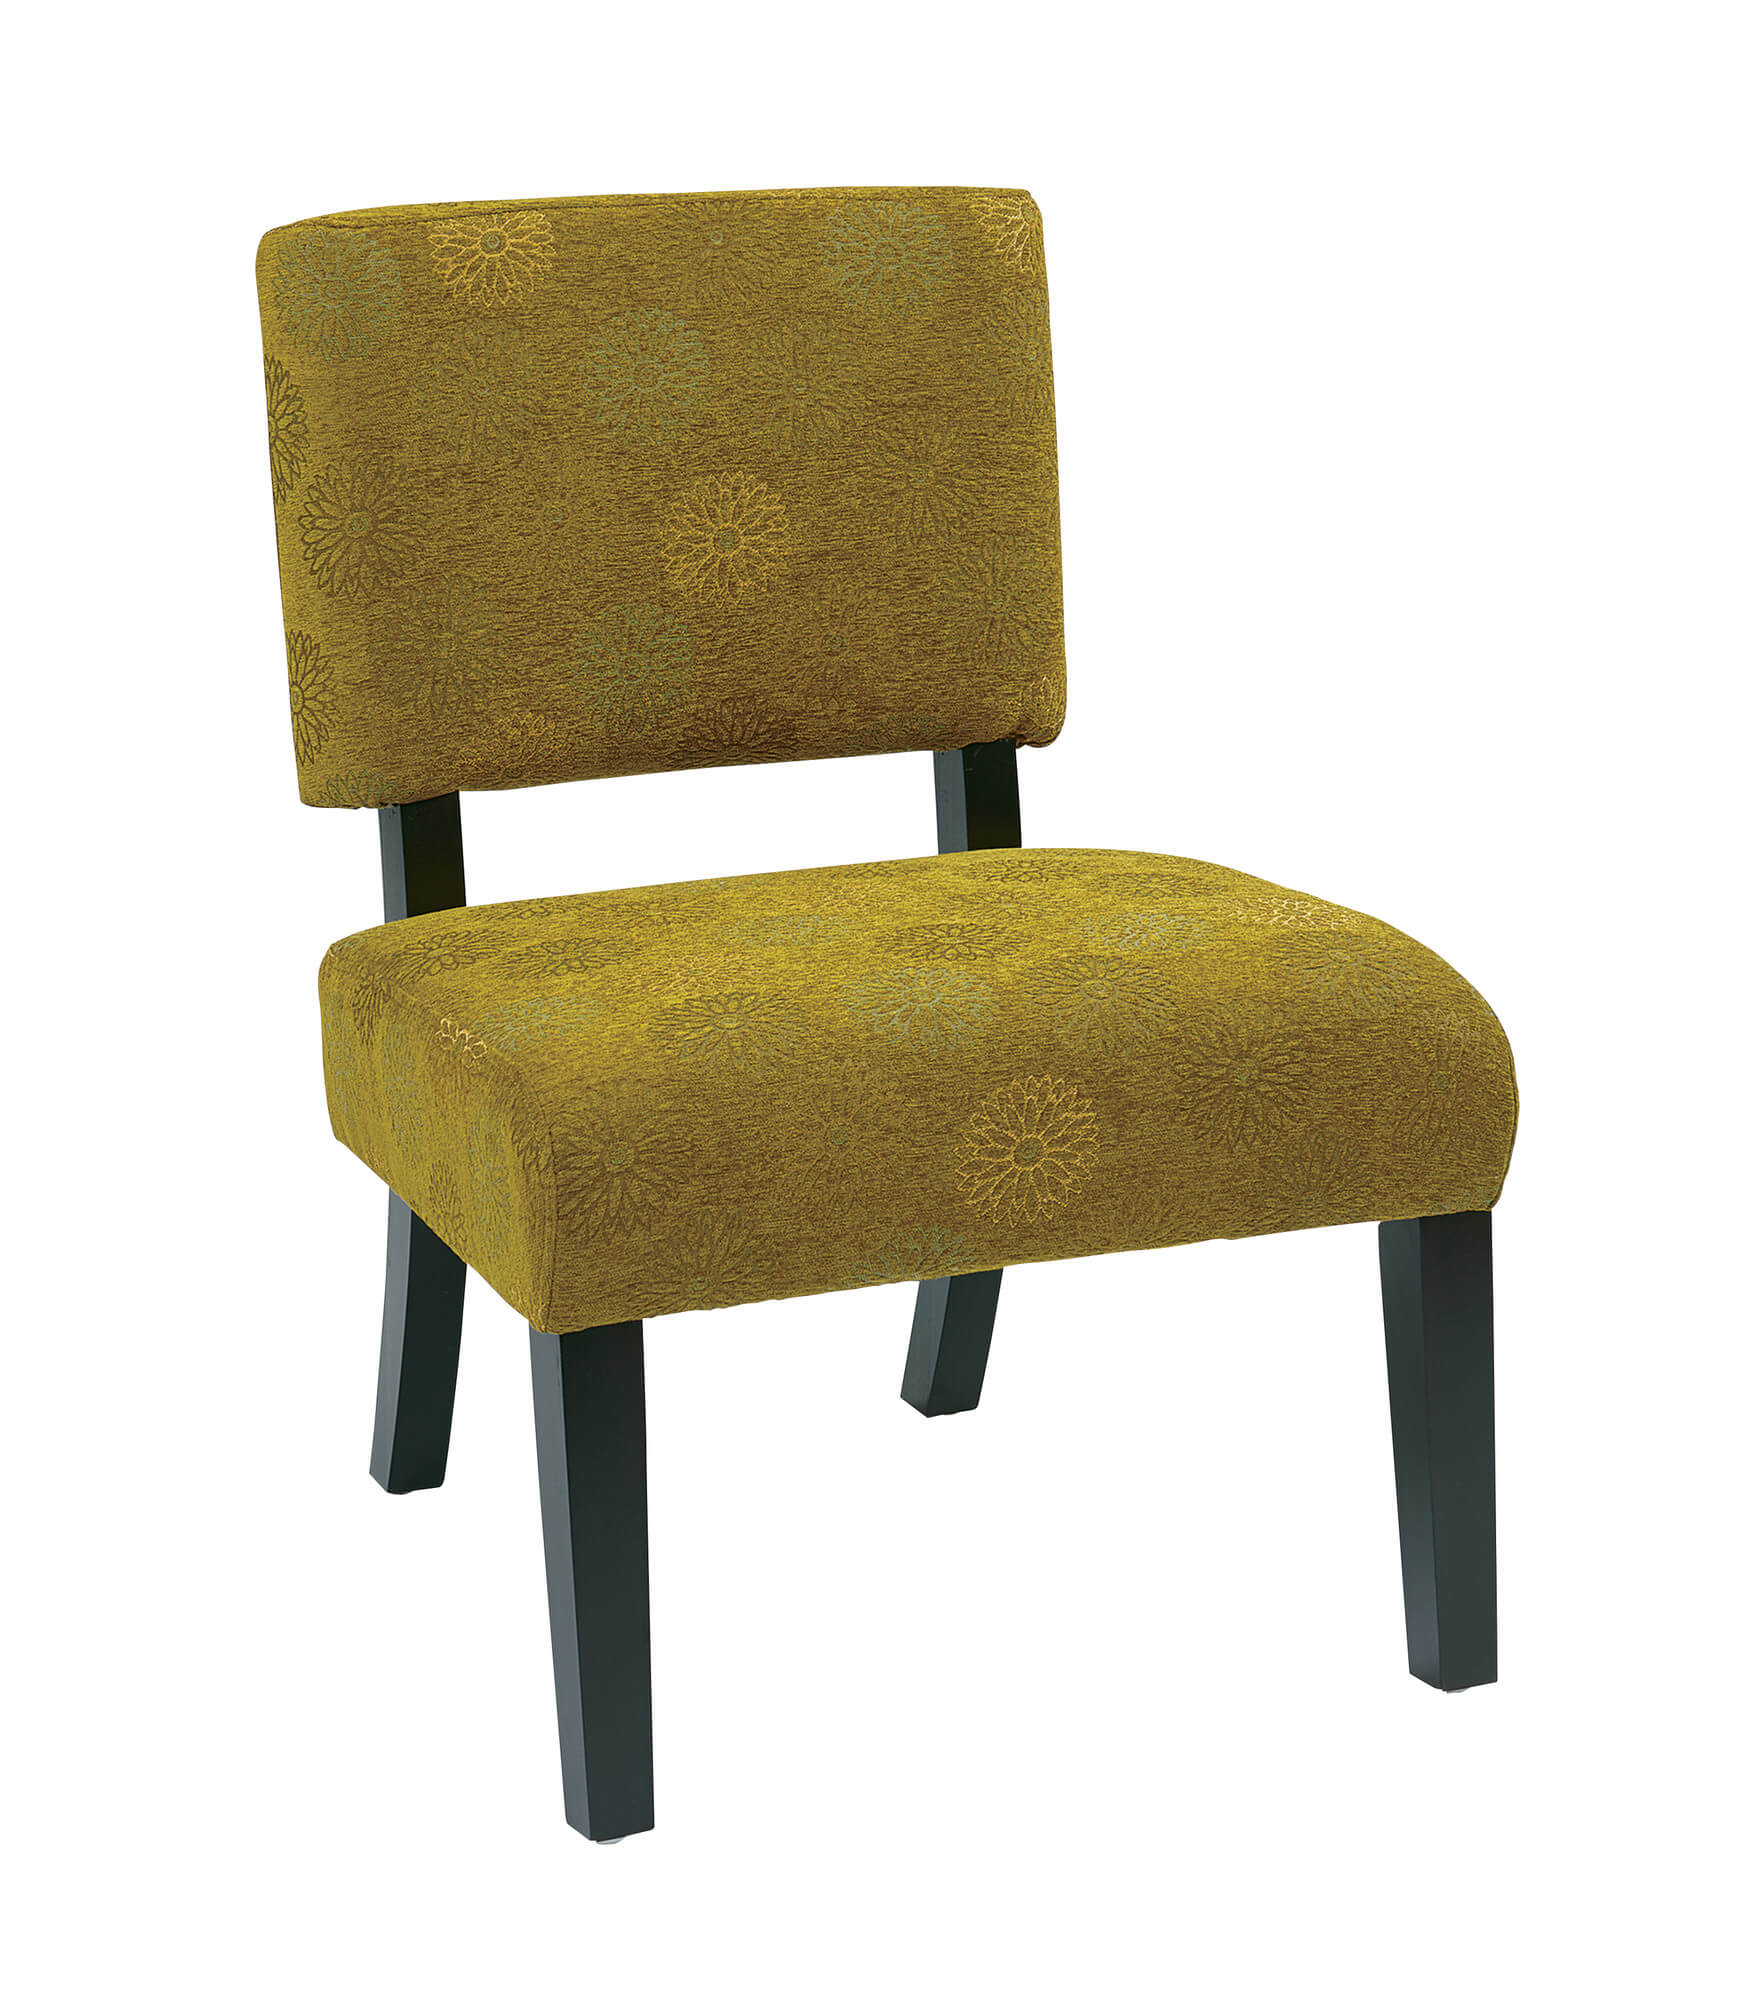 Superieur Hereu0027s A Small Accent Chair Priced Just Under $100 With A Yellow Green  Fabric That